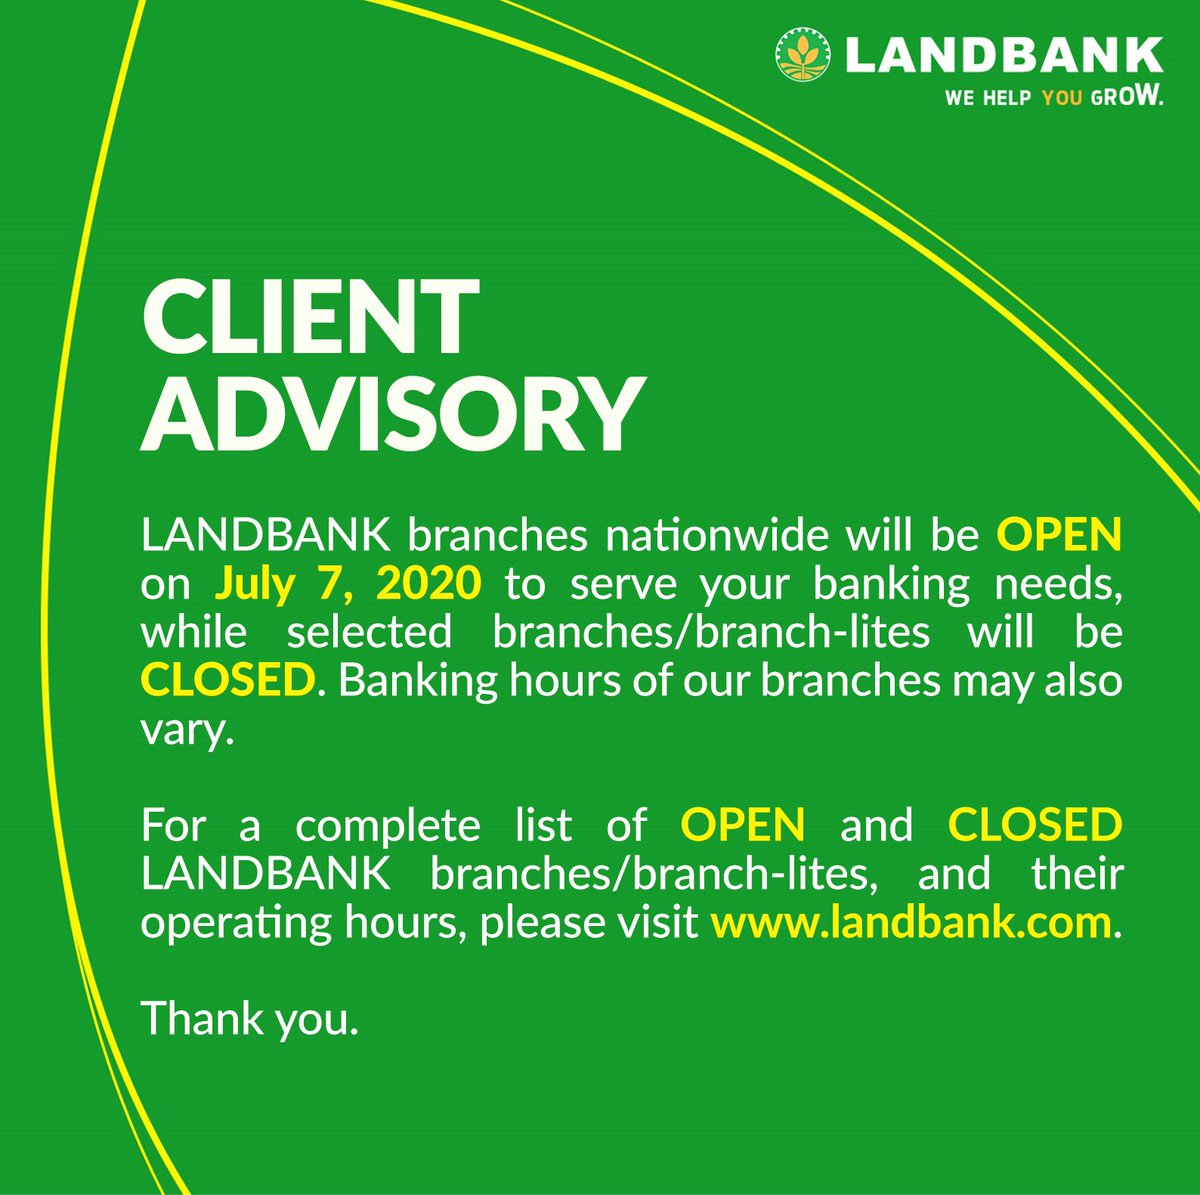 #LANDBANKClientAdvisory  To see the full list of OPEN branches, visit https://t.co/MxHJryQ9LT.  To see the full list of CLOSED branches, visit https://t.co/wW9VoIqPq4. https://t.co/R66hih0gdj